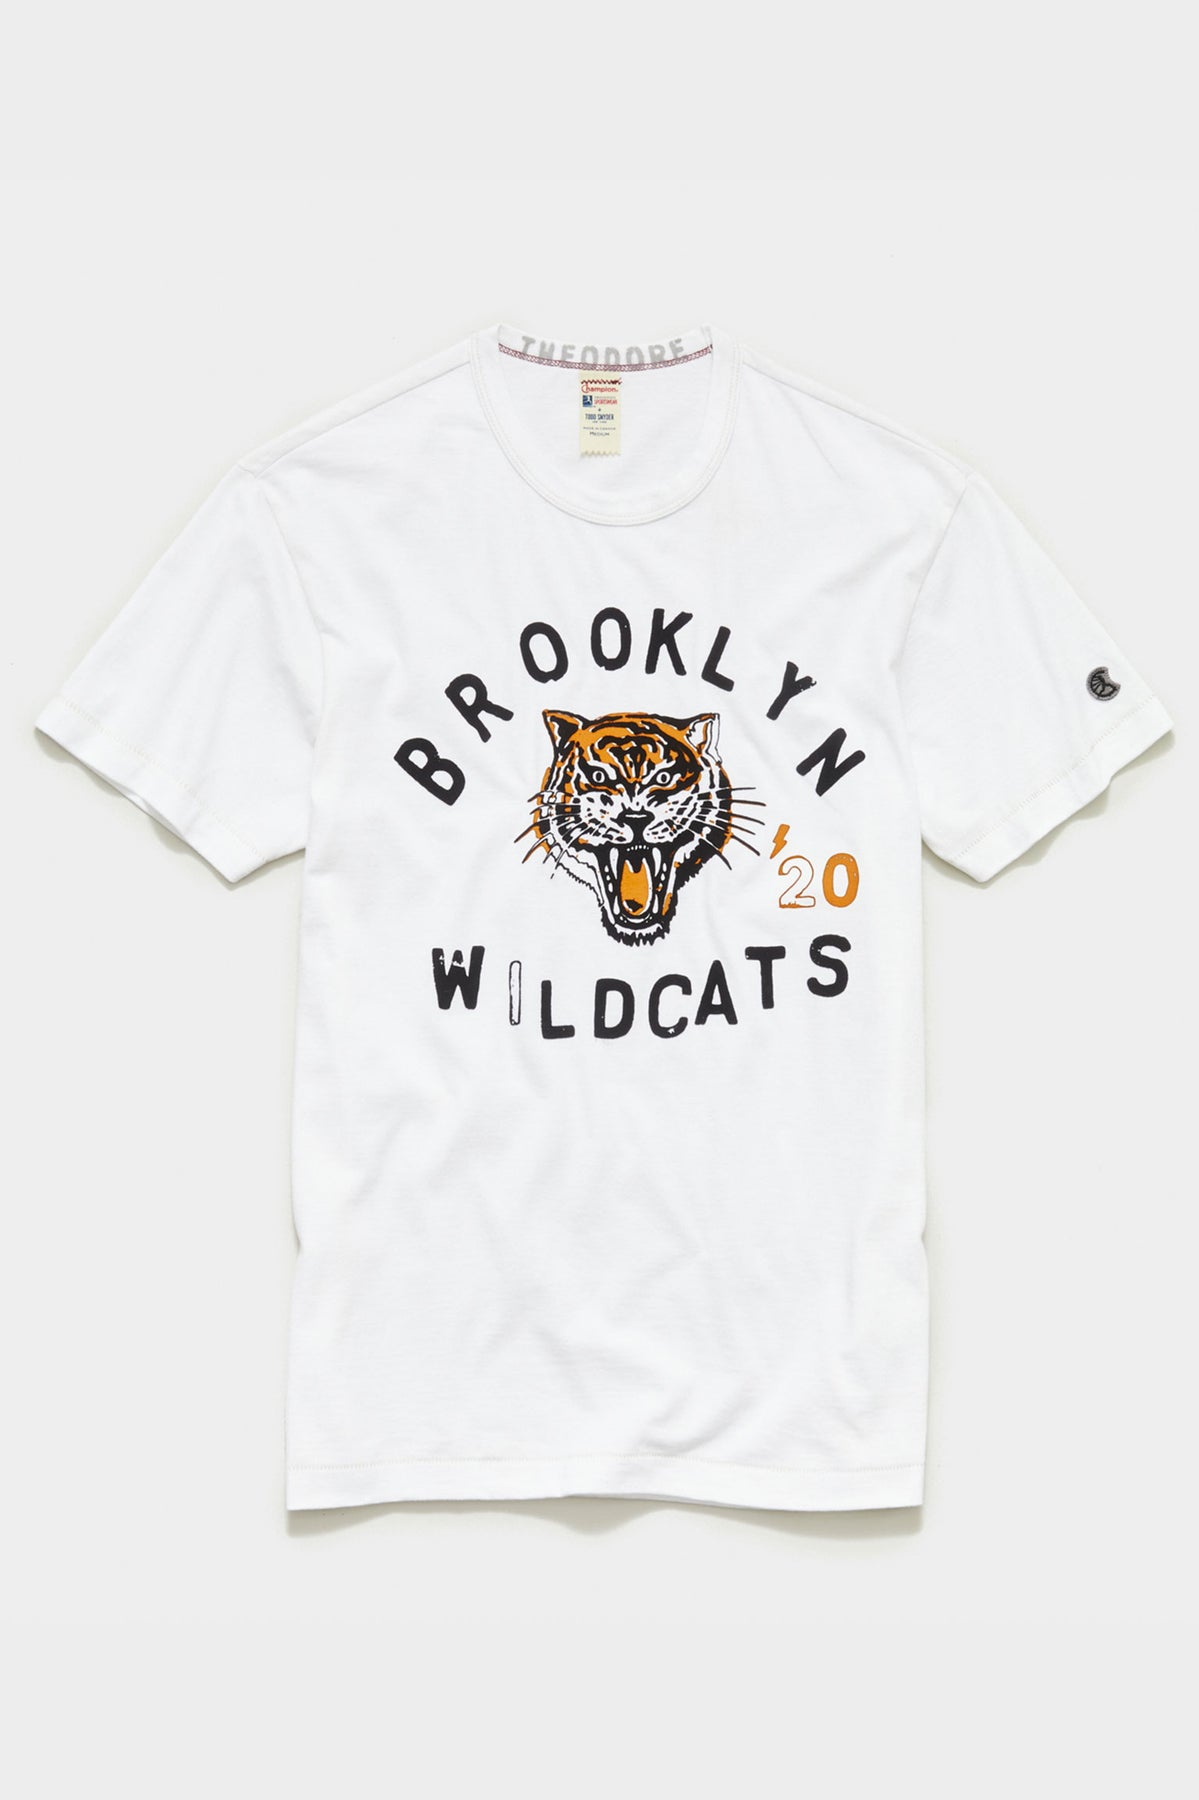 TS x Champion Limited Edition: The Brooklyn Circus Wildcats Tee